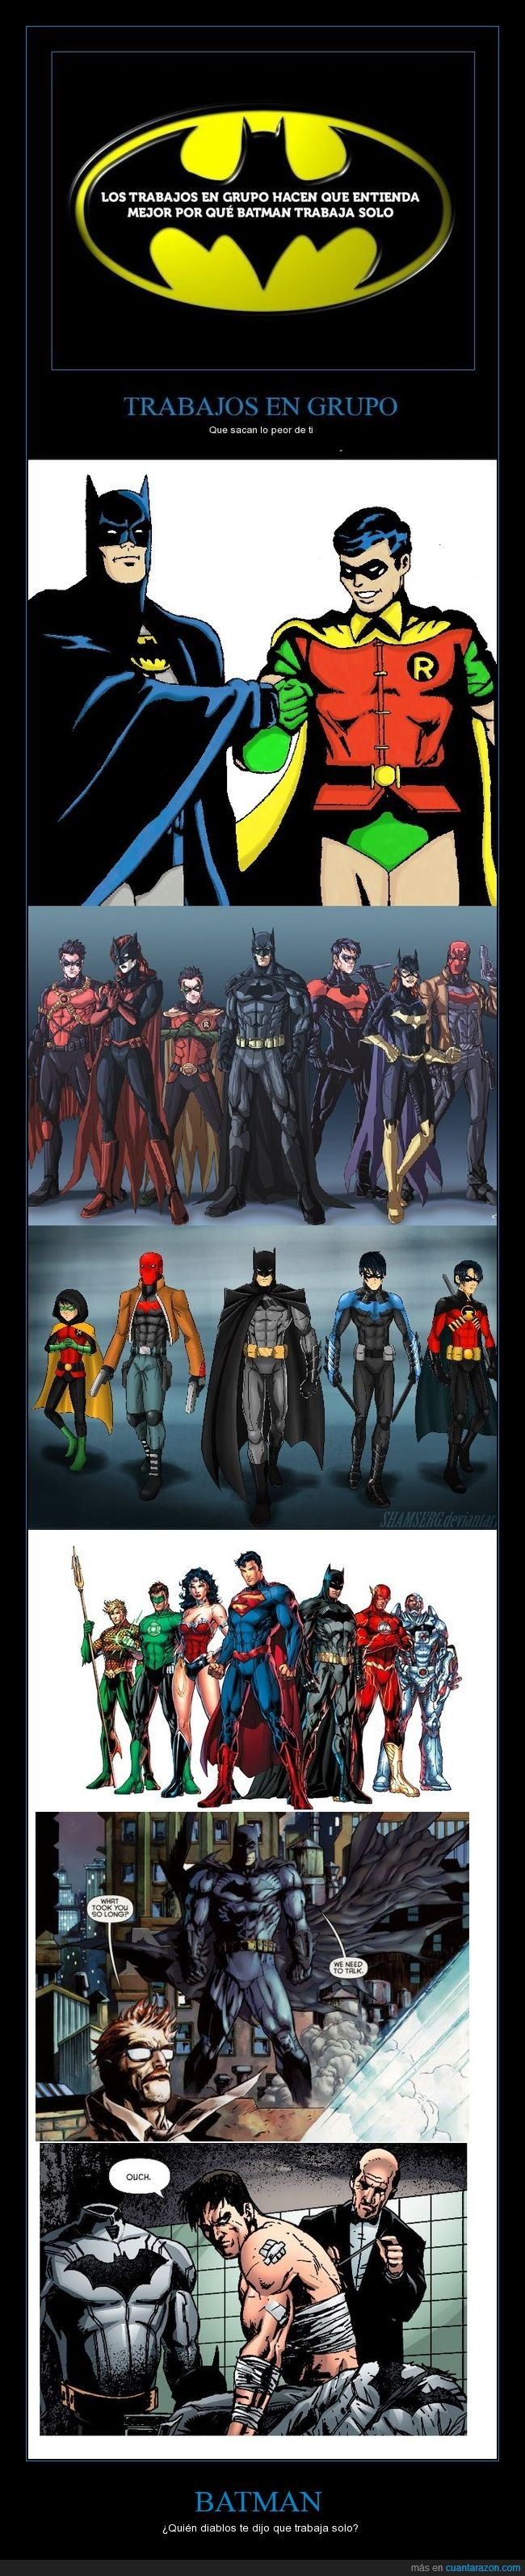 alfred,batfamily,batgirl,batman,jim gordon,robin